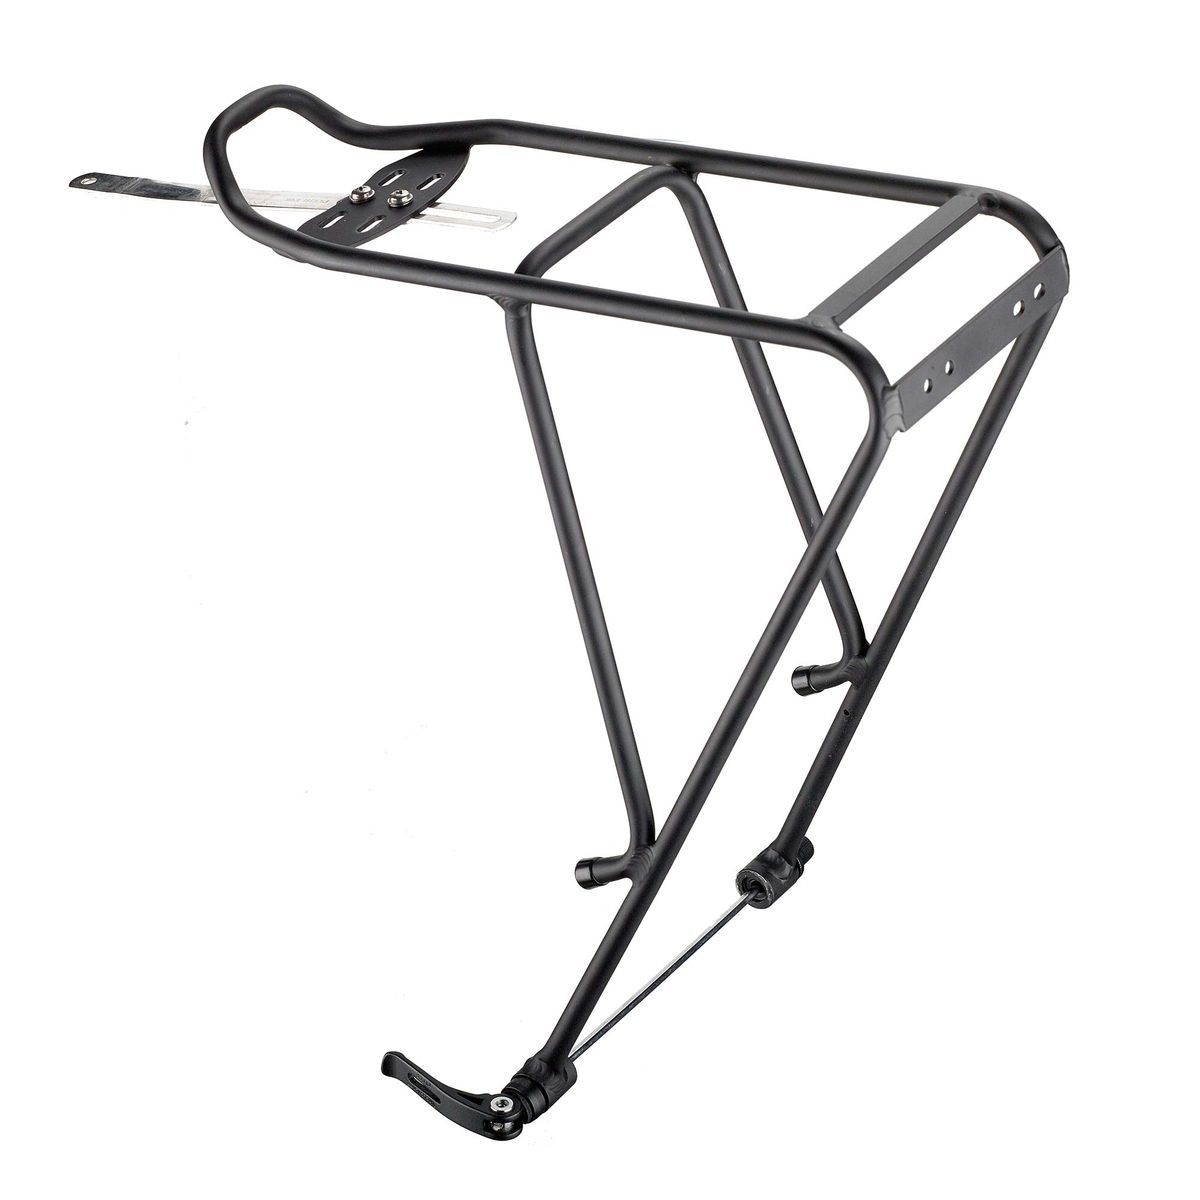 Race Tour QR1 pannier rack